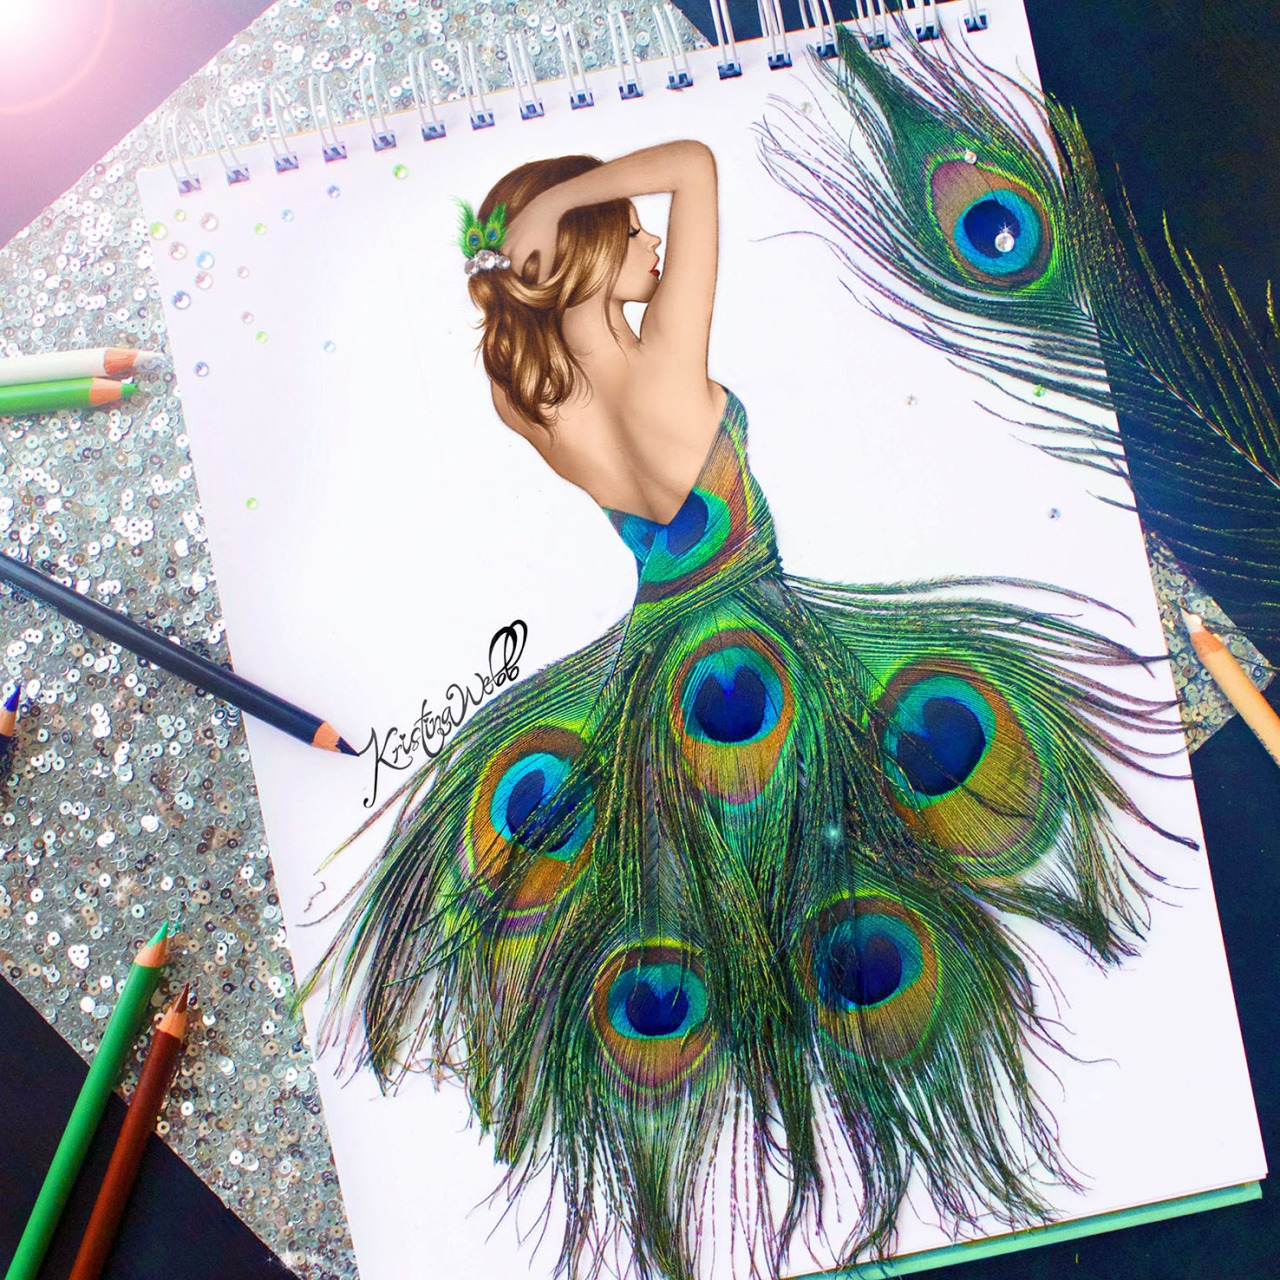 Drawn peafowl pinterest Feather feather Peacock Peacock Pencil